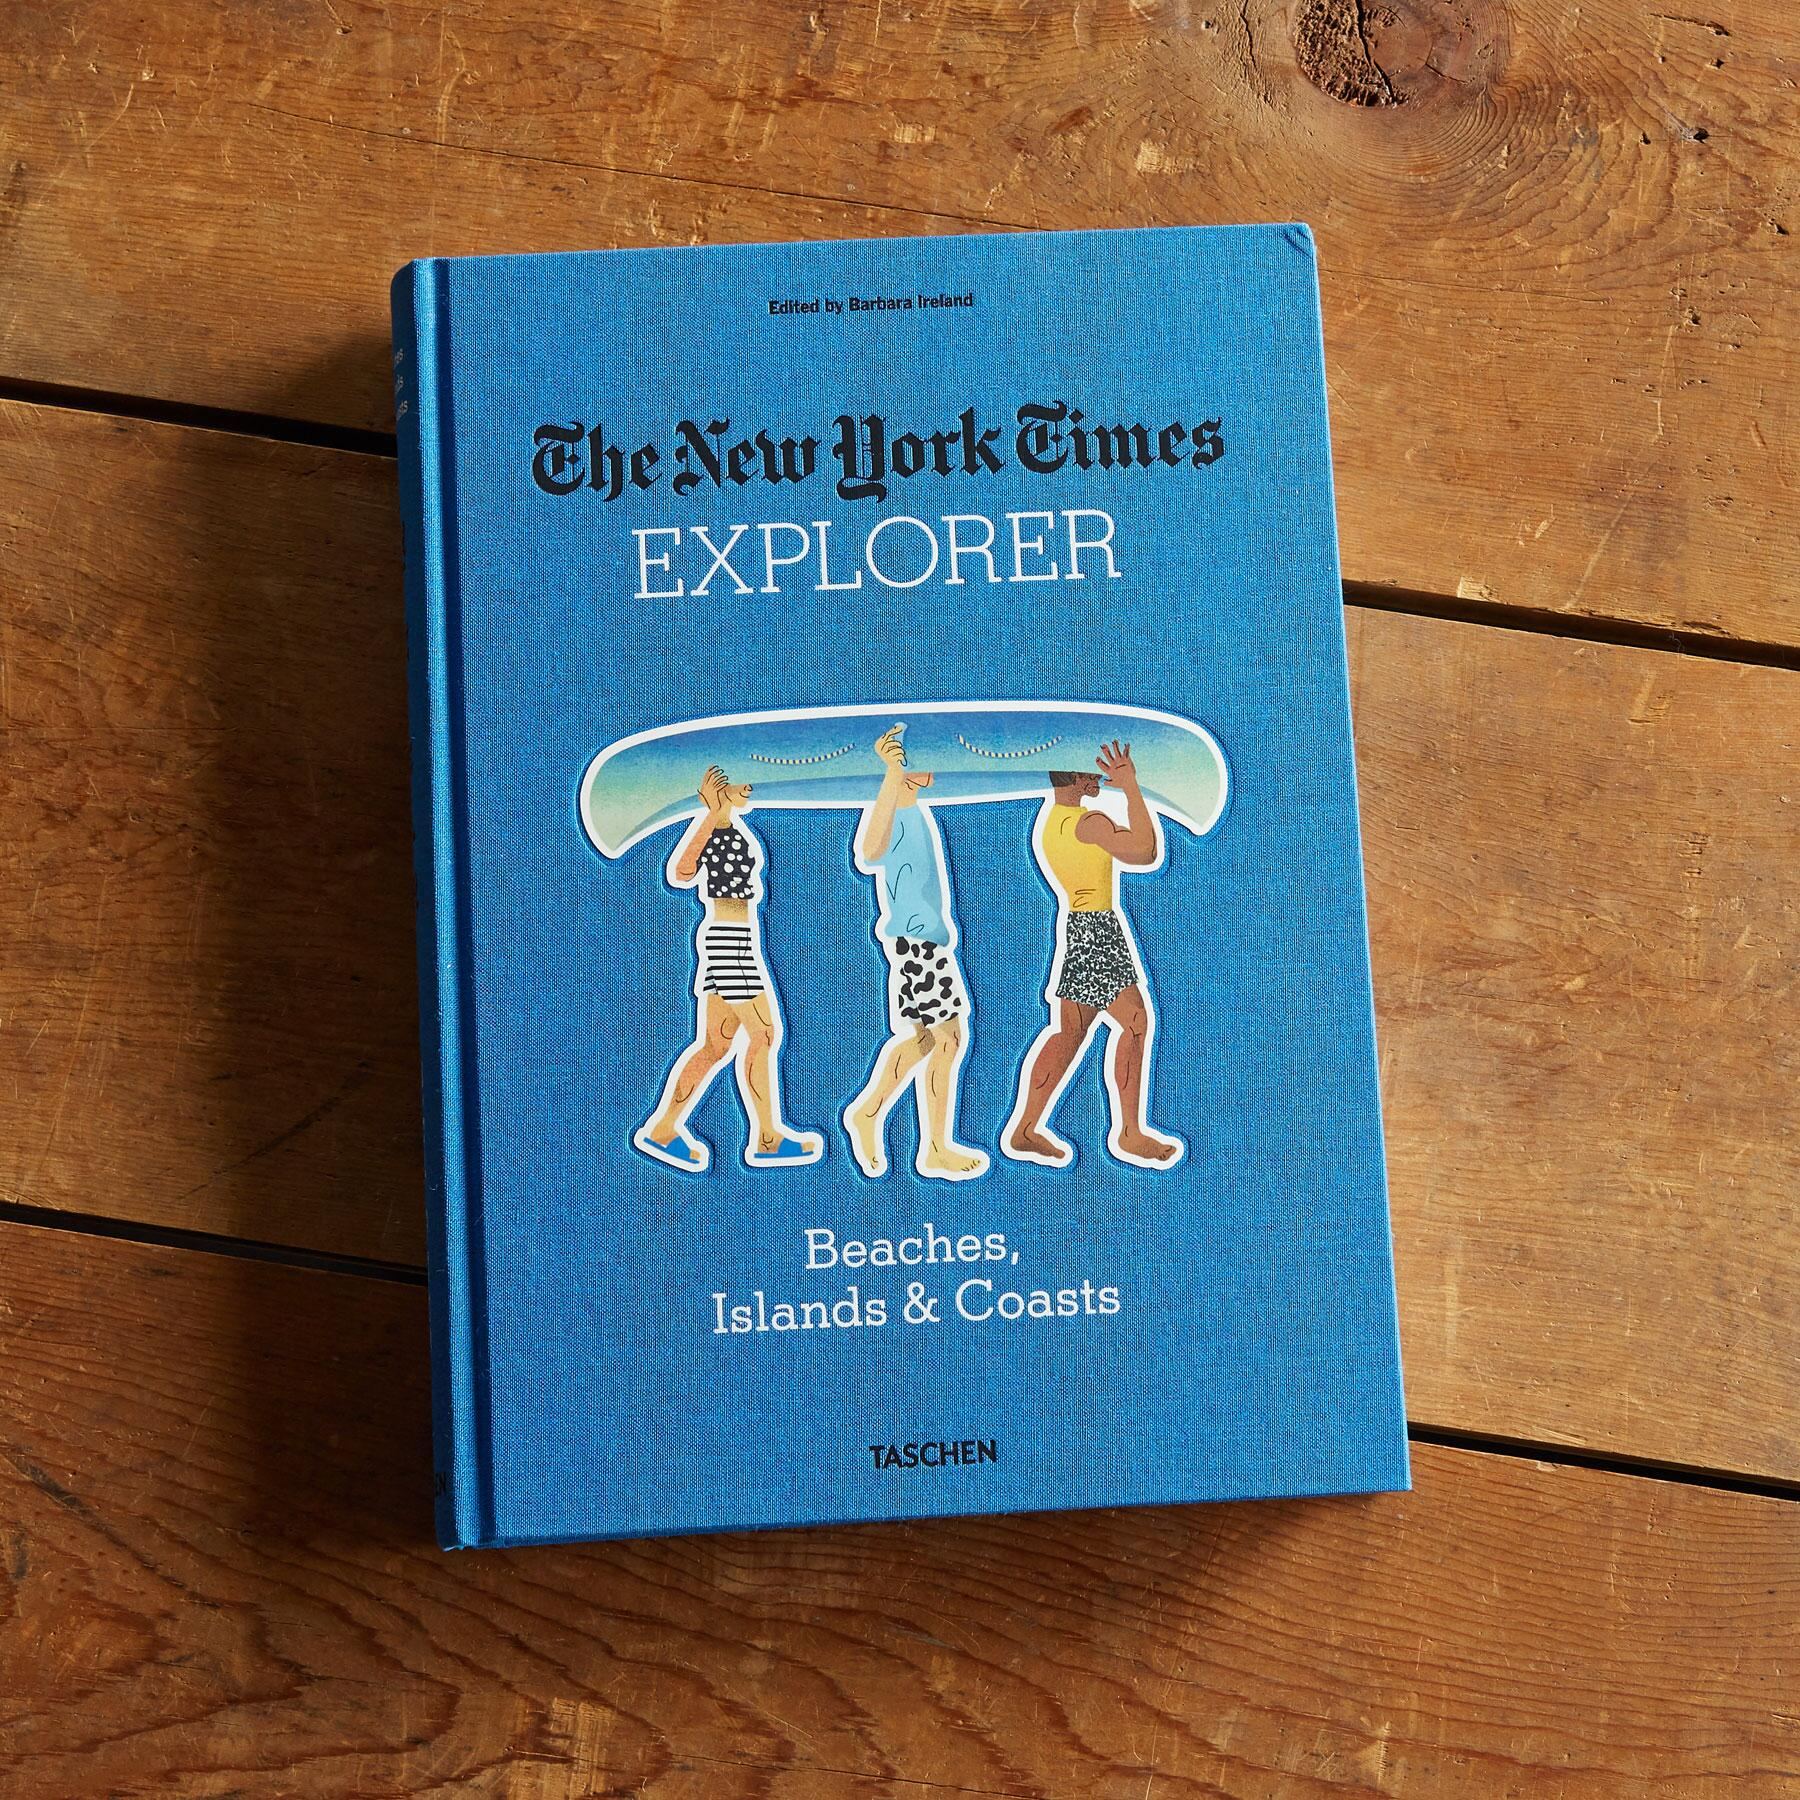 THE NEW YORK TIMES EXPLORER BEACHES, ISLANDS & COASTS BOOK: View 1